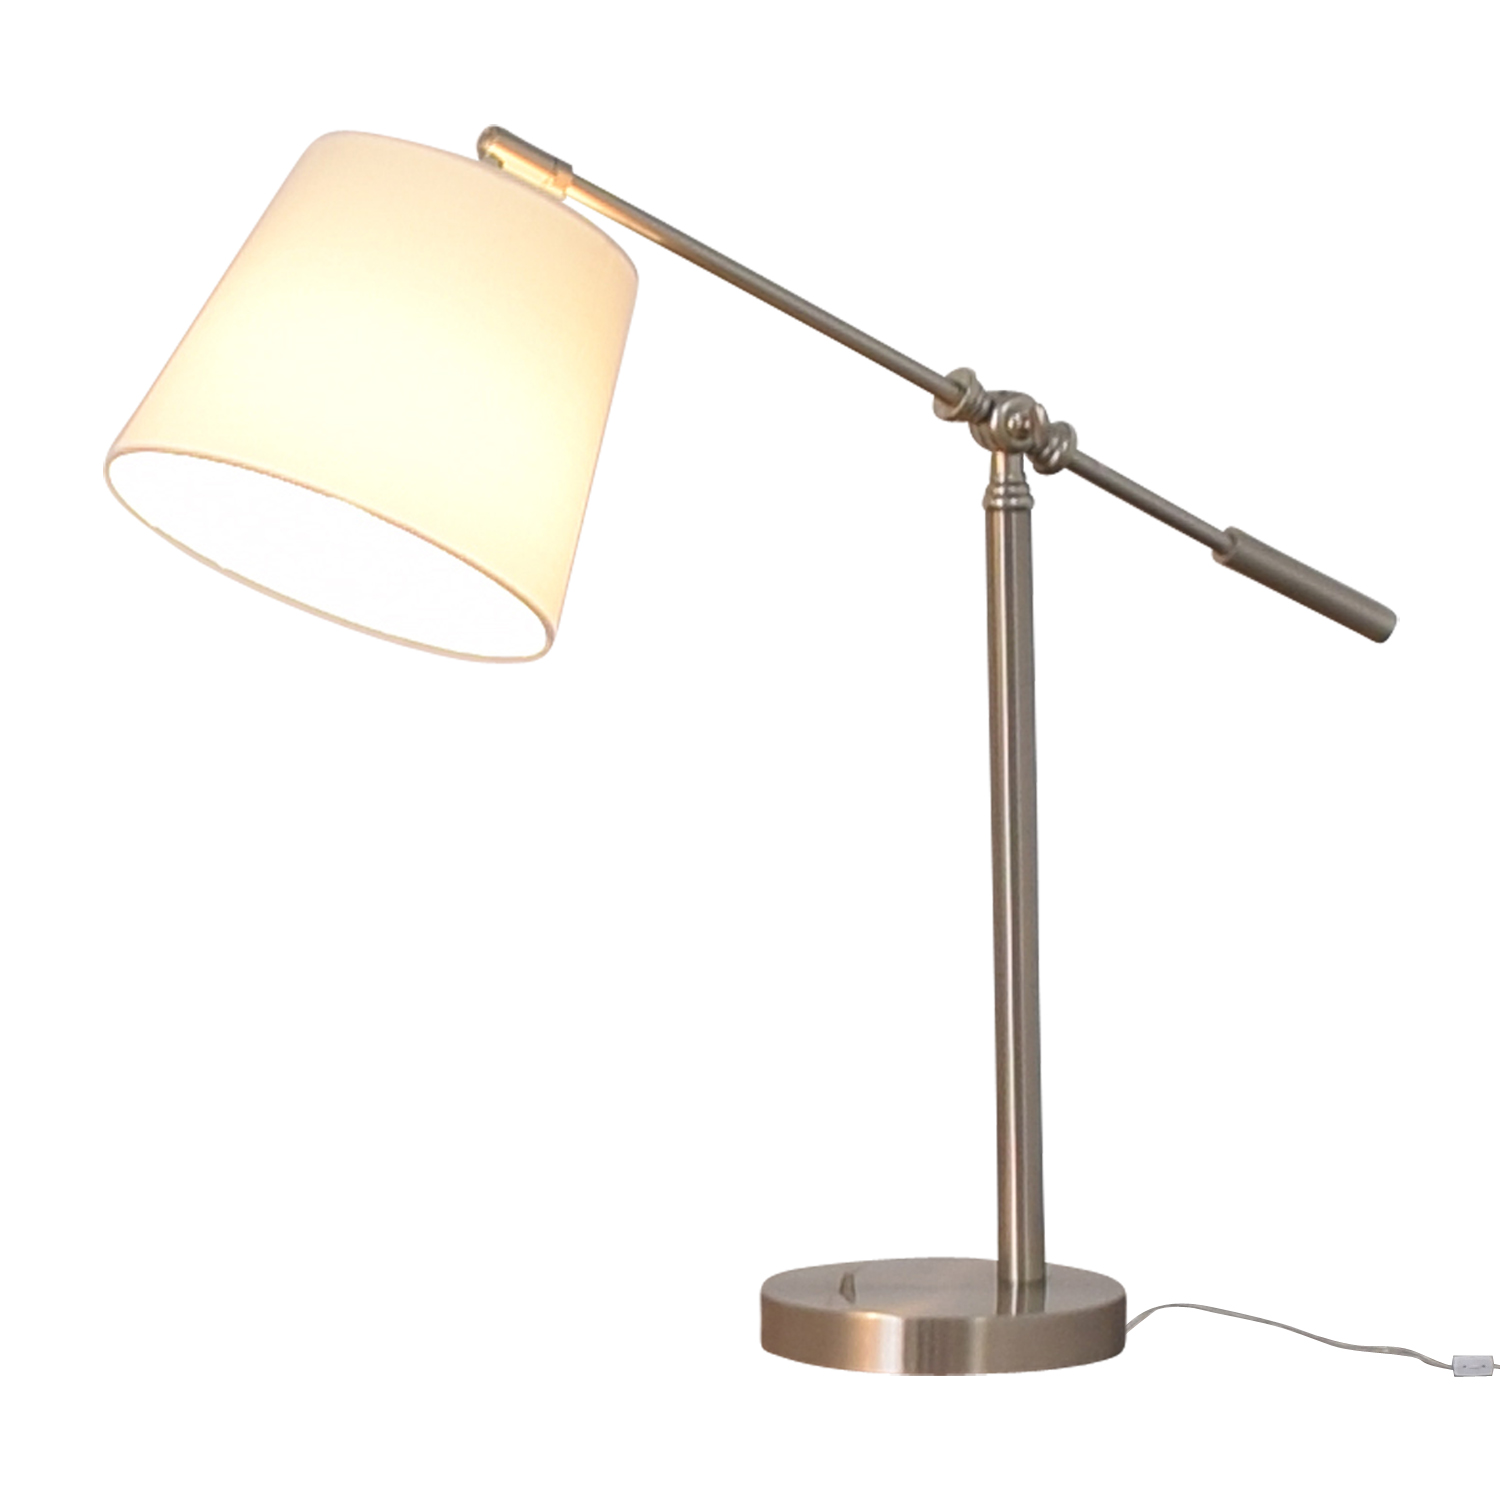 buy Wayfair Sarina Chrome Desk Lamp Wayfair Decor